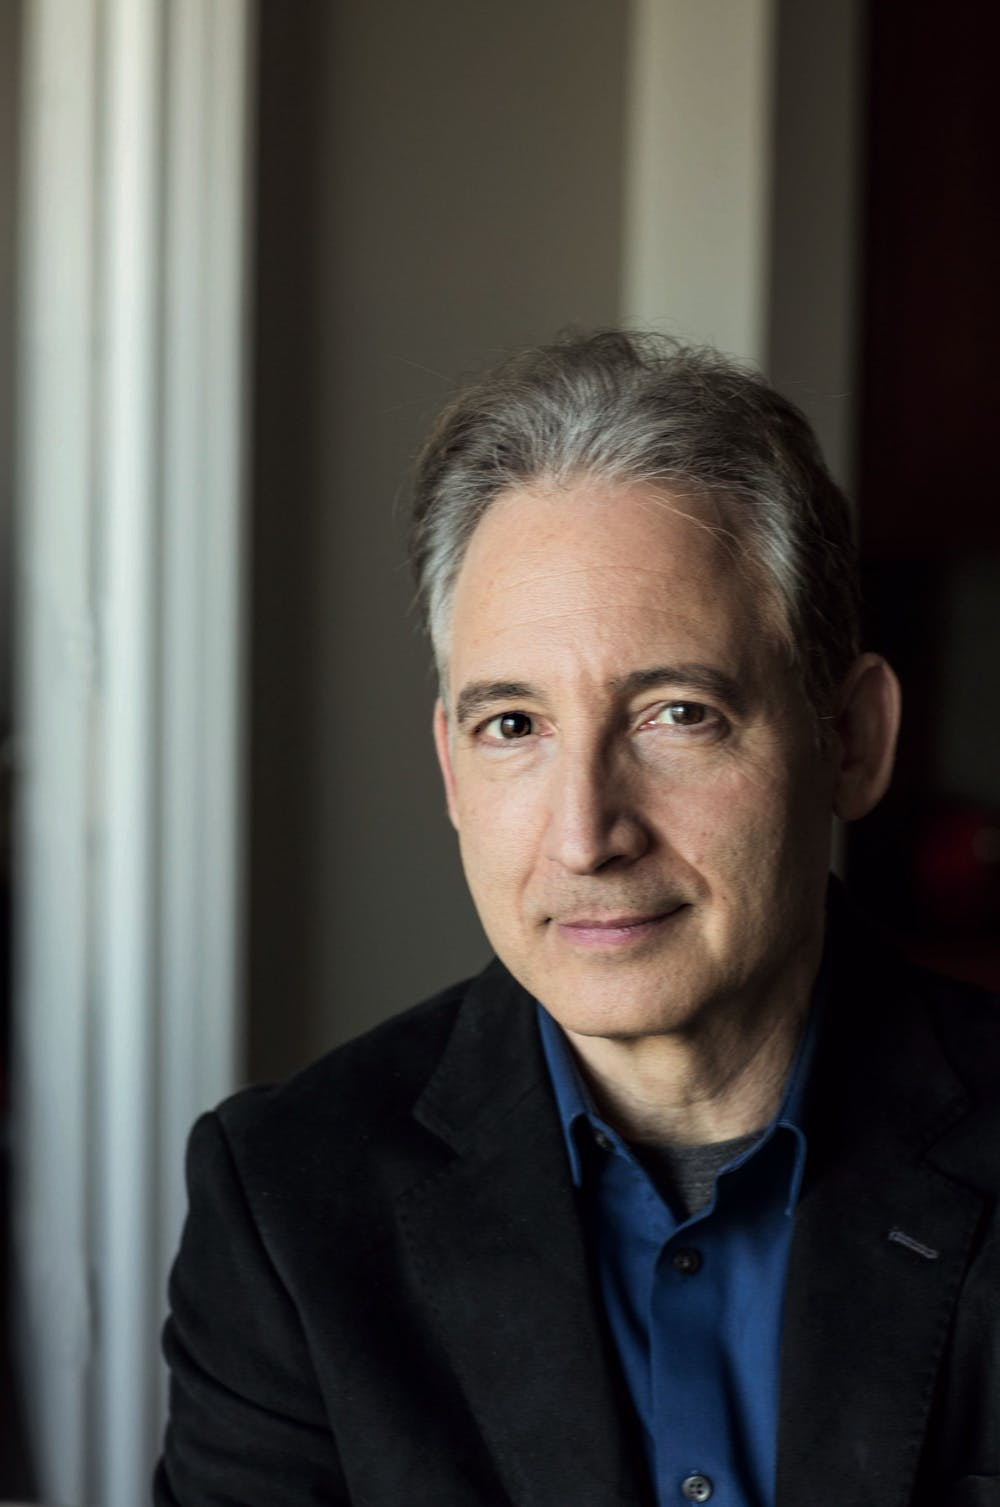 <p>Brian Greene, professor of mathematics and physics at Columbia University, explained humankind's search for meaning through examining the history and future of the universe at his recent talk at the Paramount Theater.&nbsp;</p>